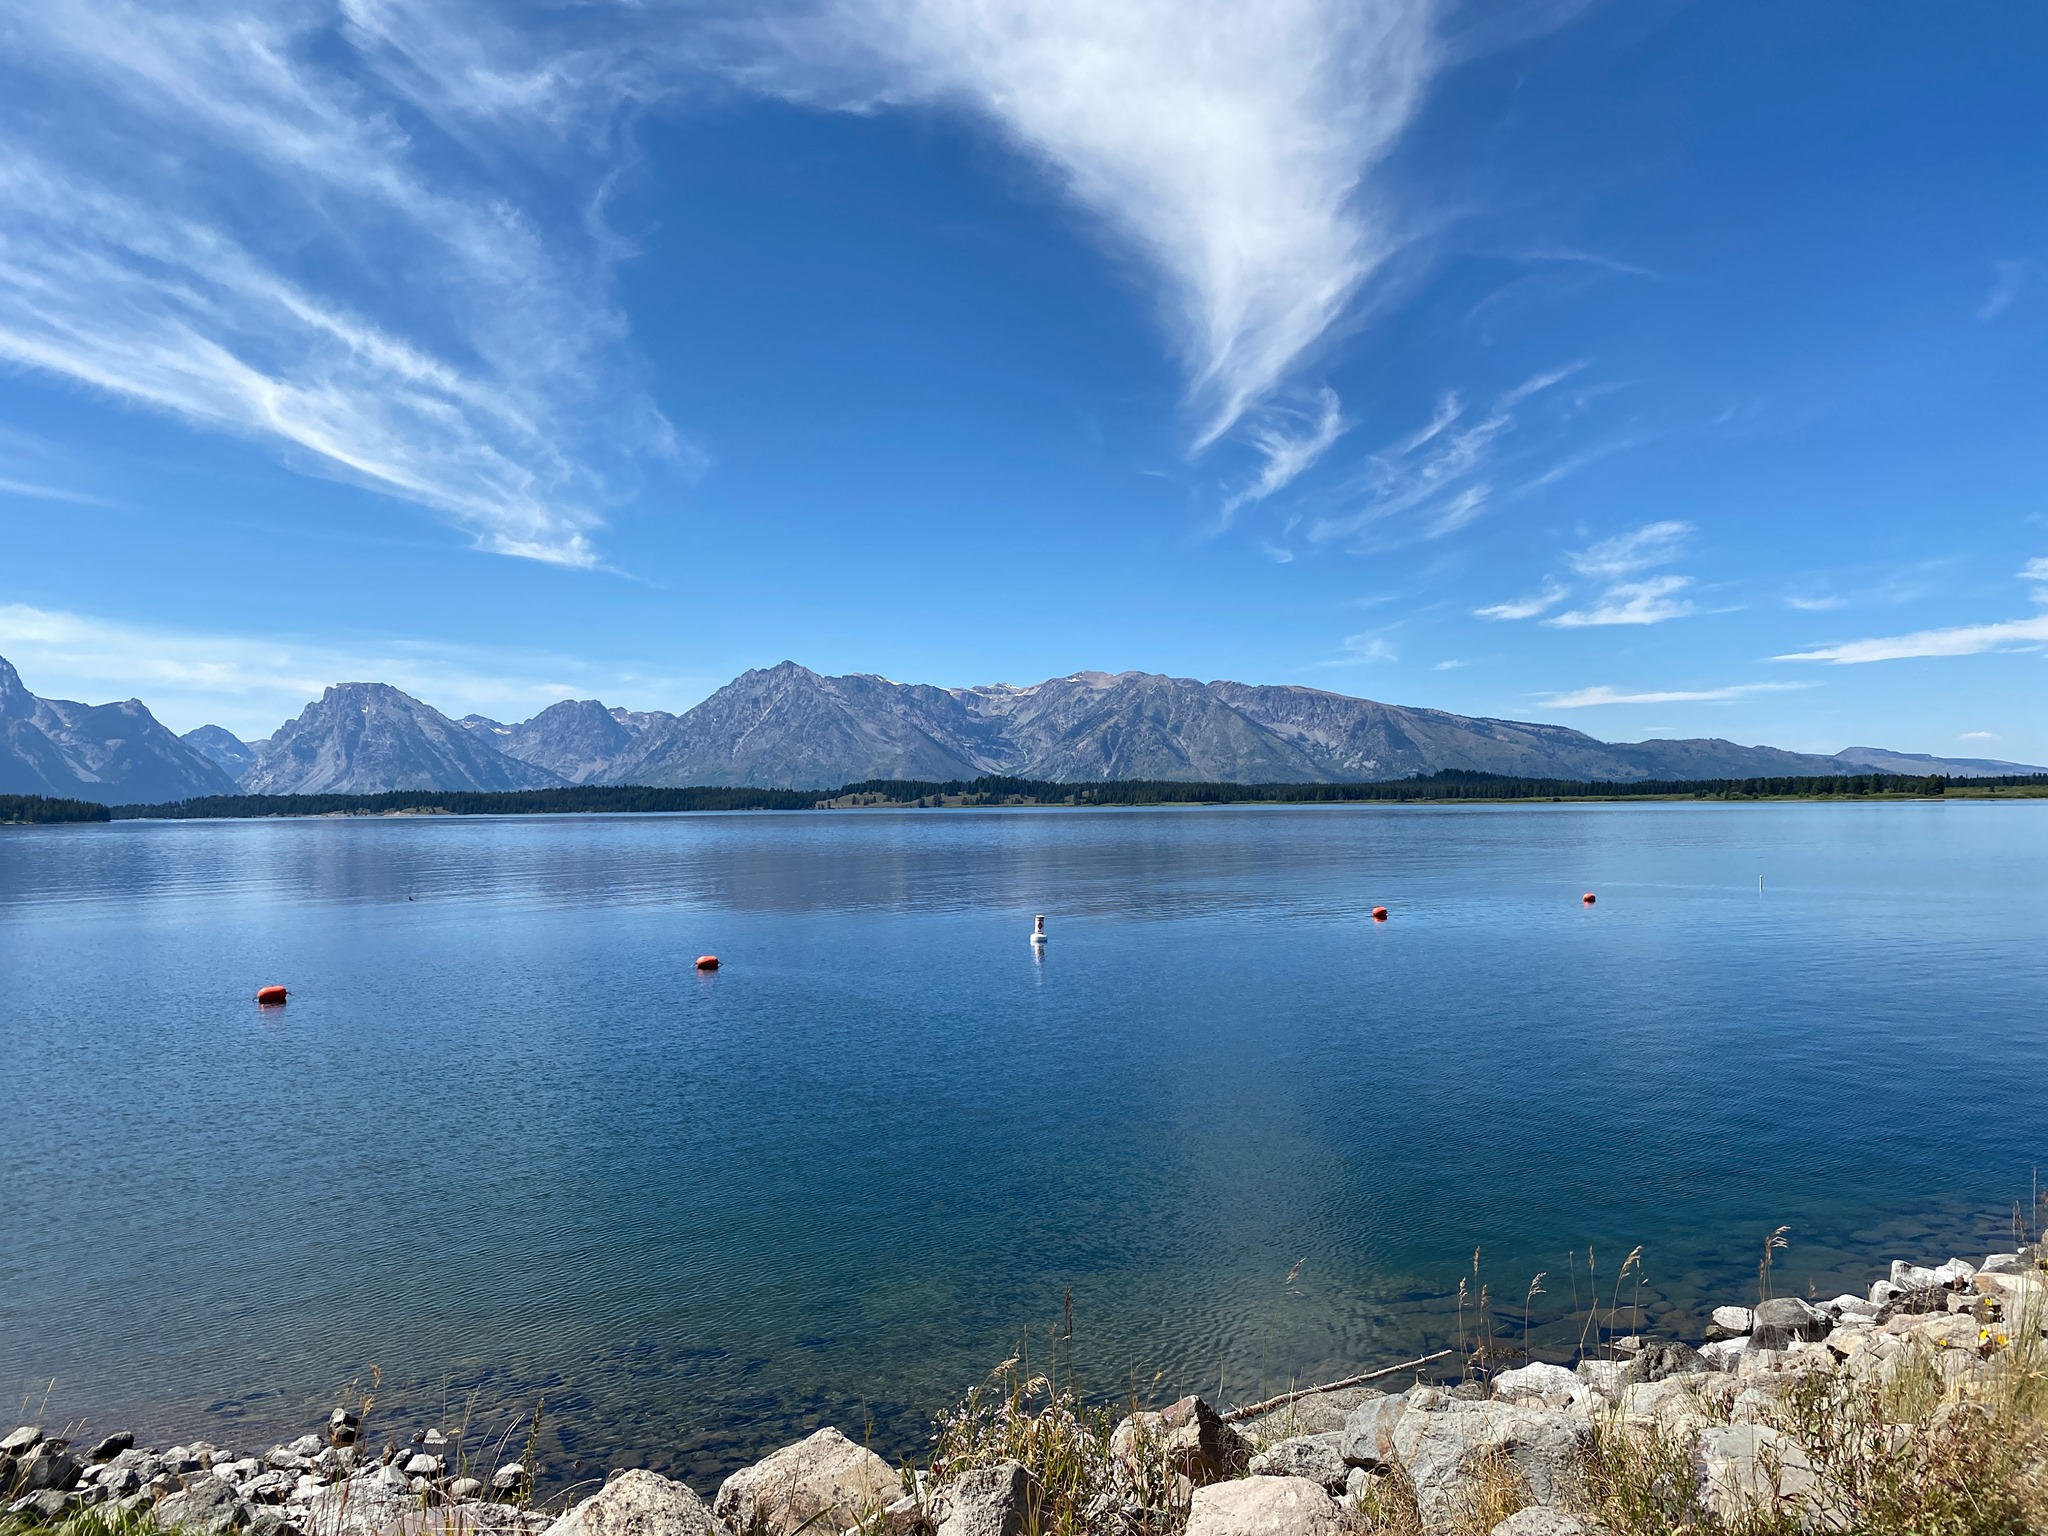 Blue sky above blue lake with mountains reflected in the water in Grand Teton NP